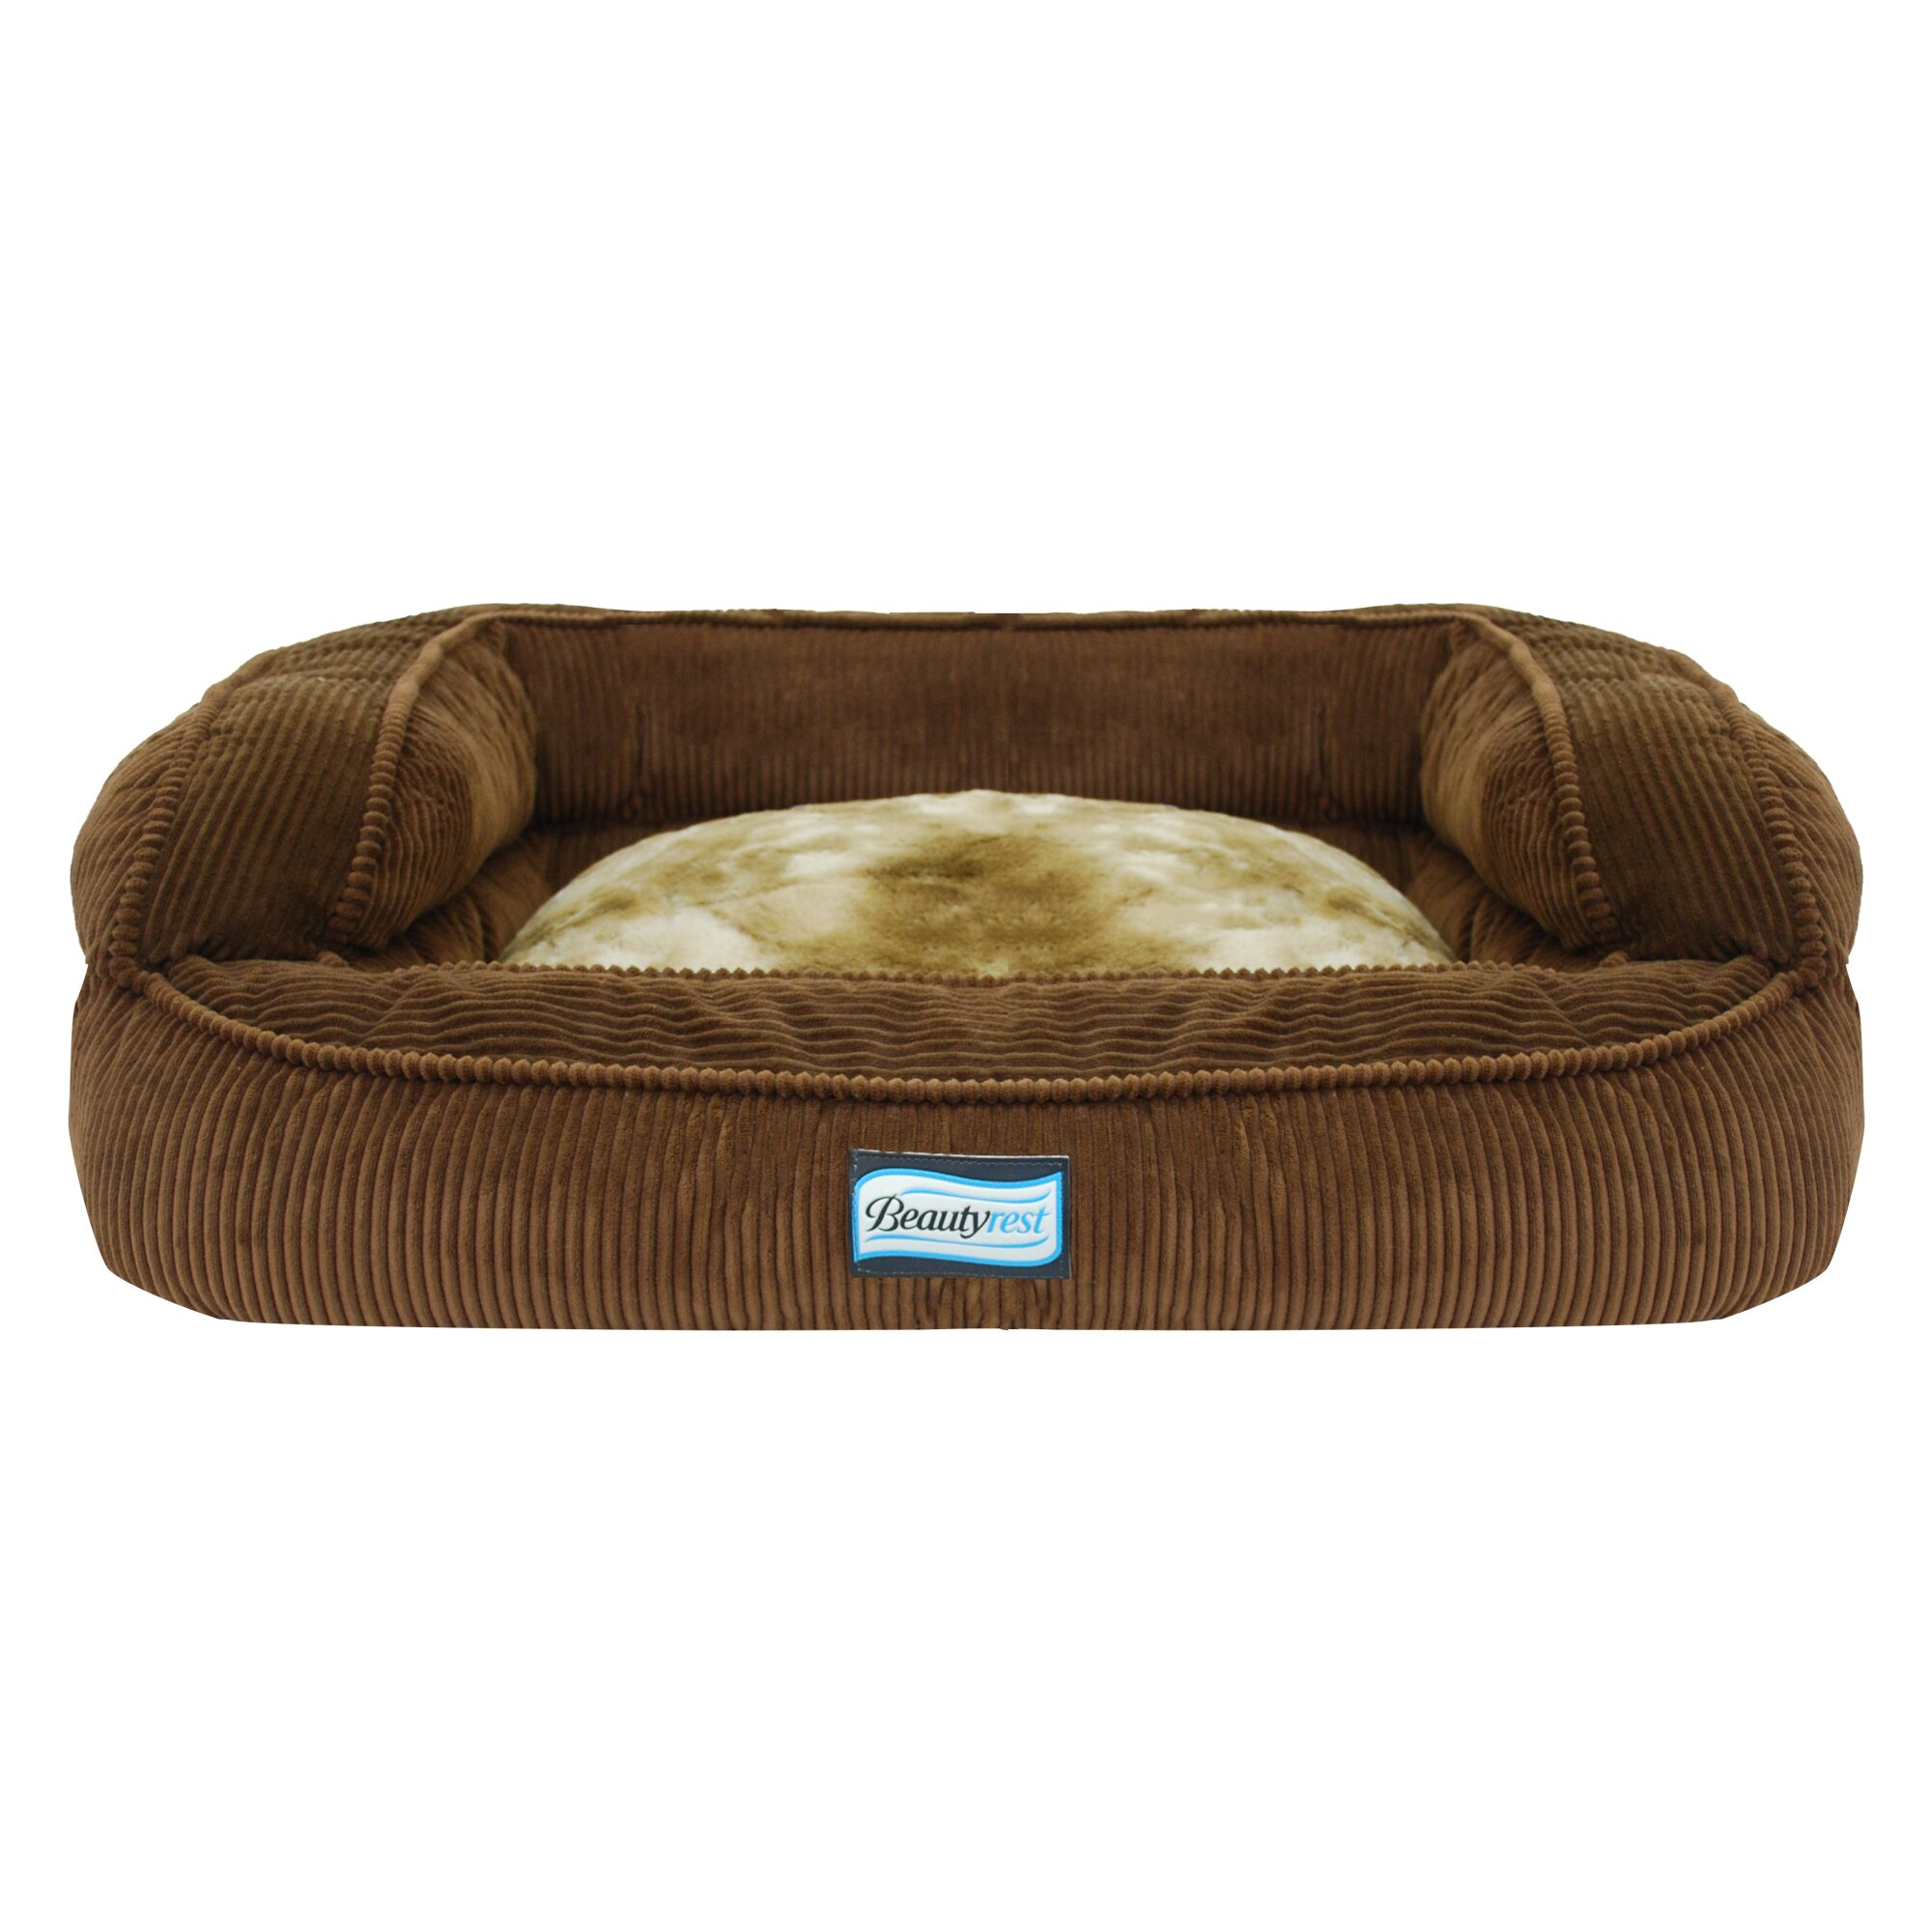 Overstuffed Luxury Sofa Dog Bed Best Chic And Creative Fancy Pet